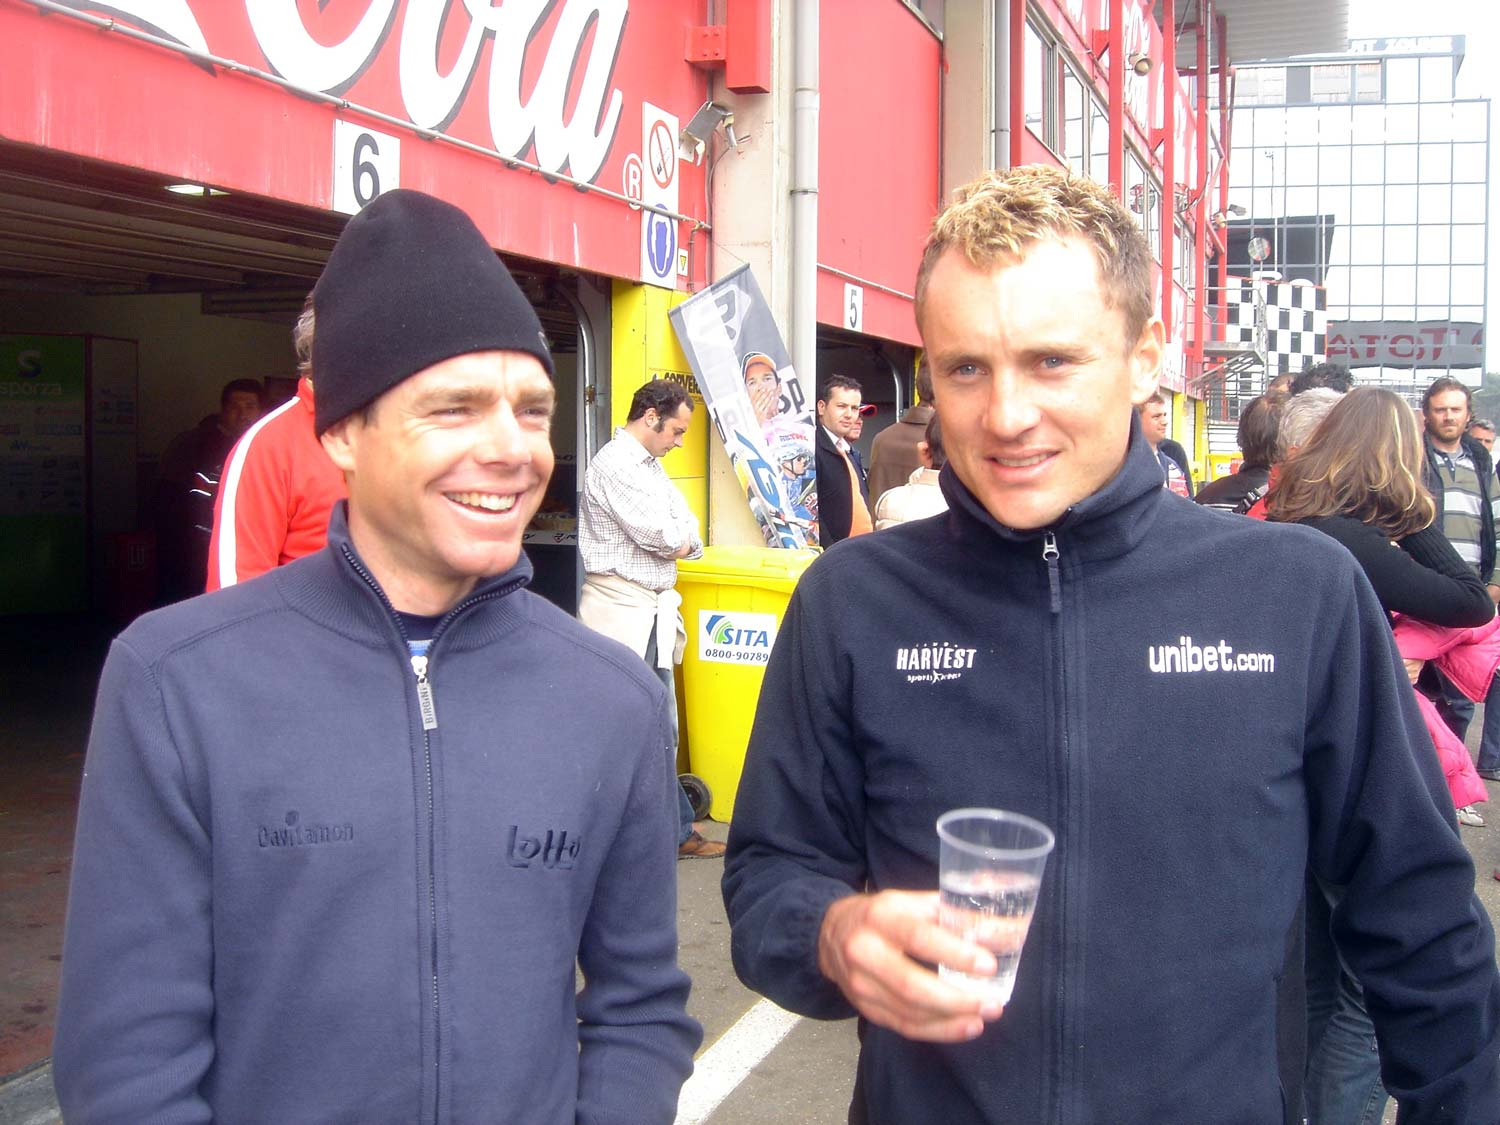 At the Zolder racetrack on 20 April 2006. Cadel Evans and Baden Cooke. Photo: Rob Arnold